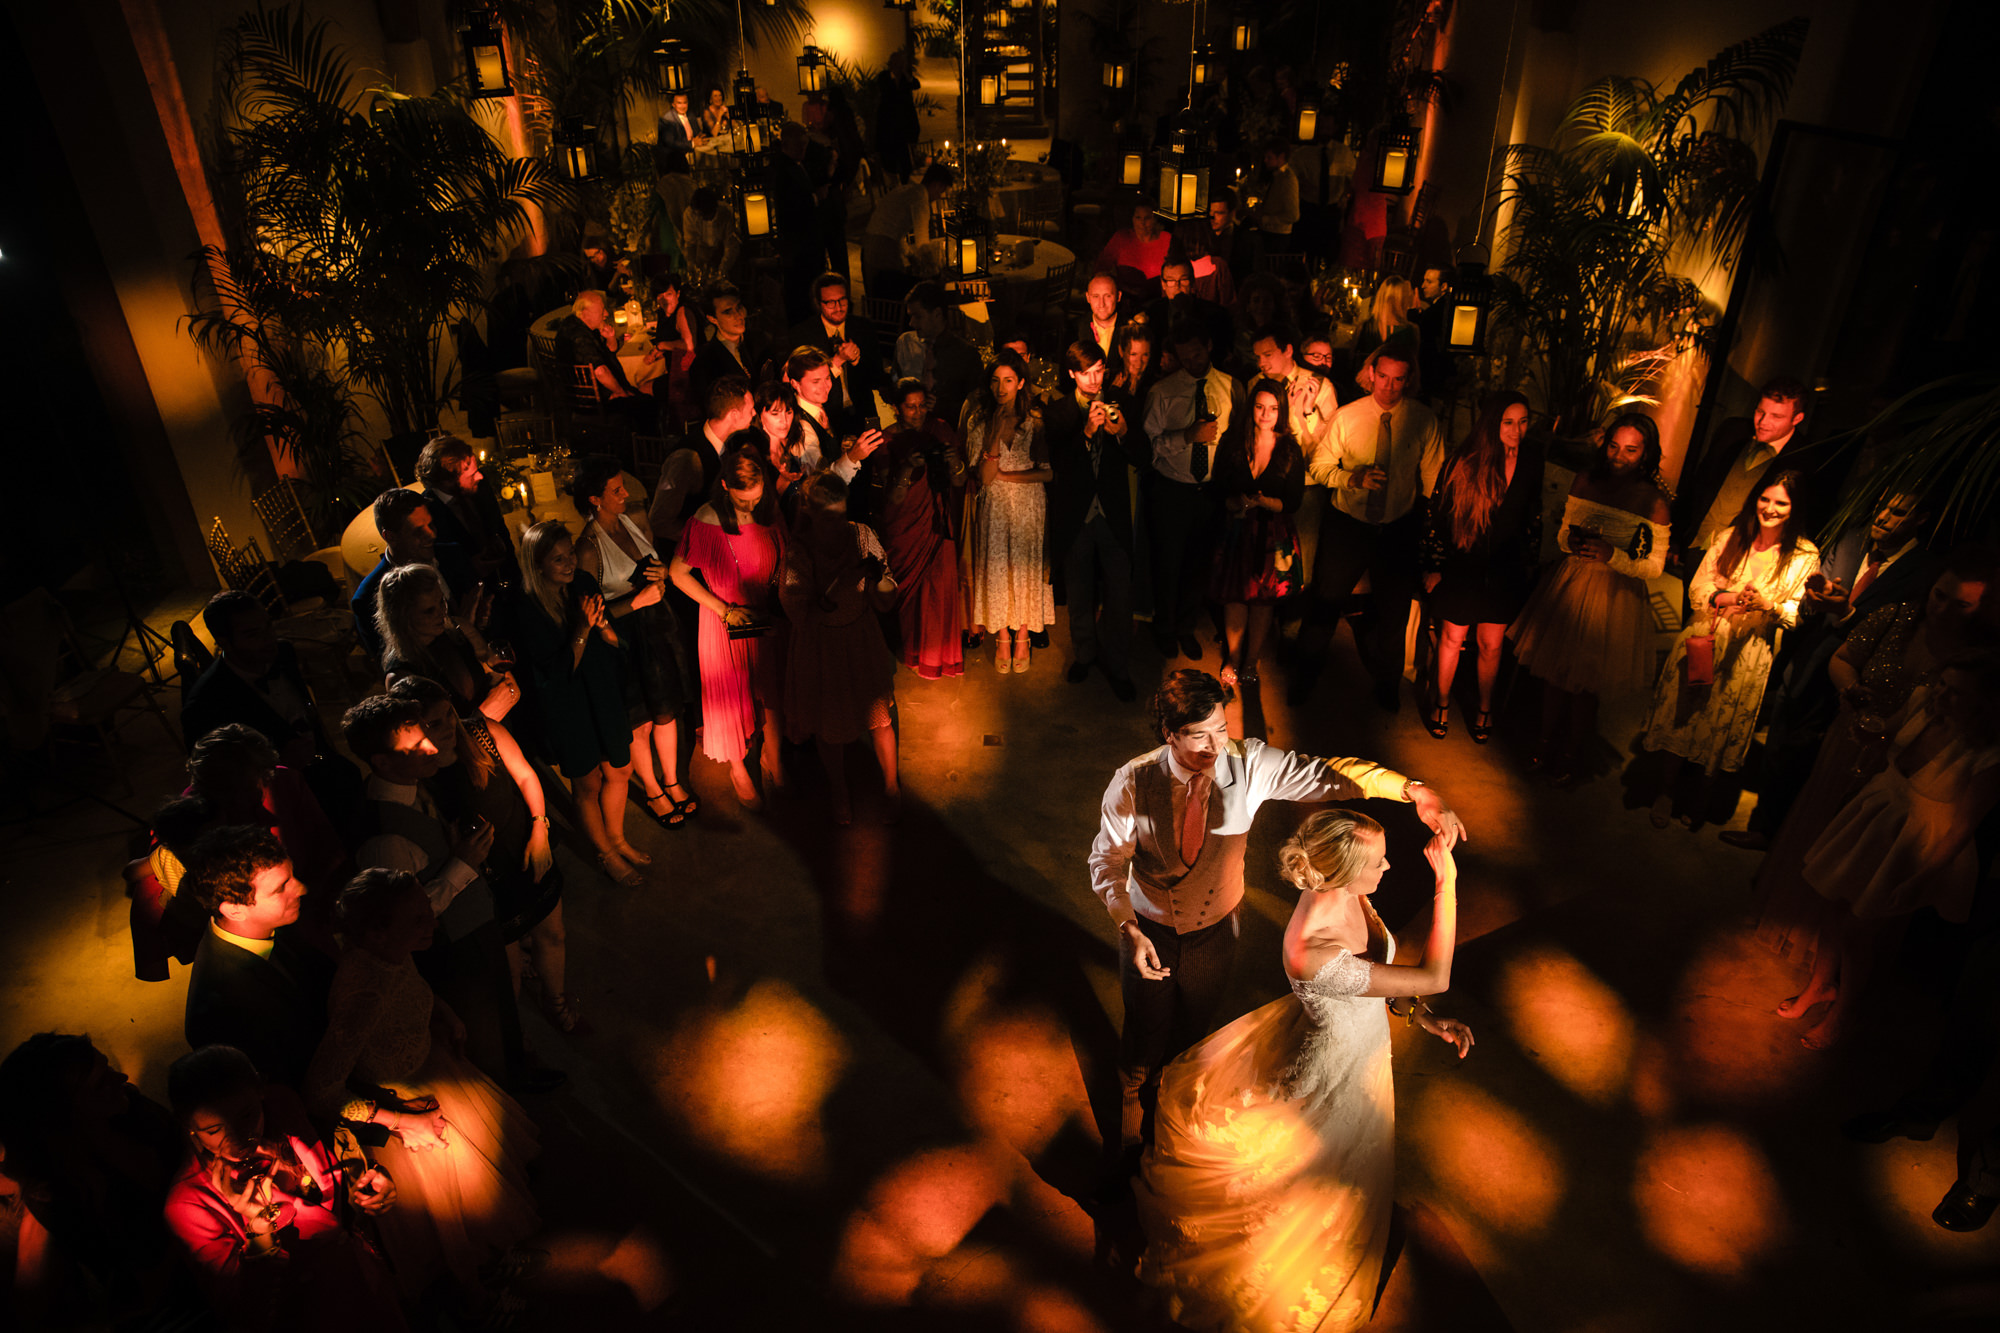 First dance photo by Yves Schepers